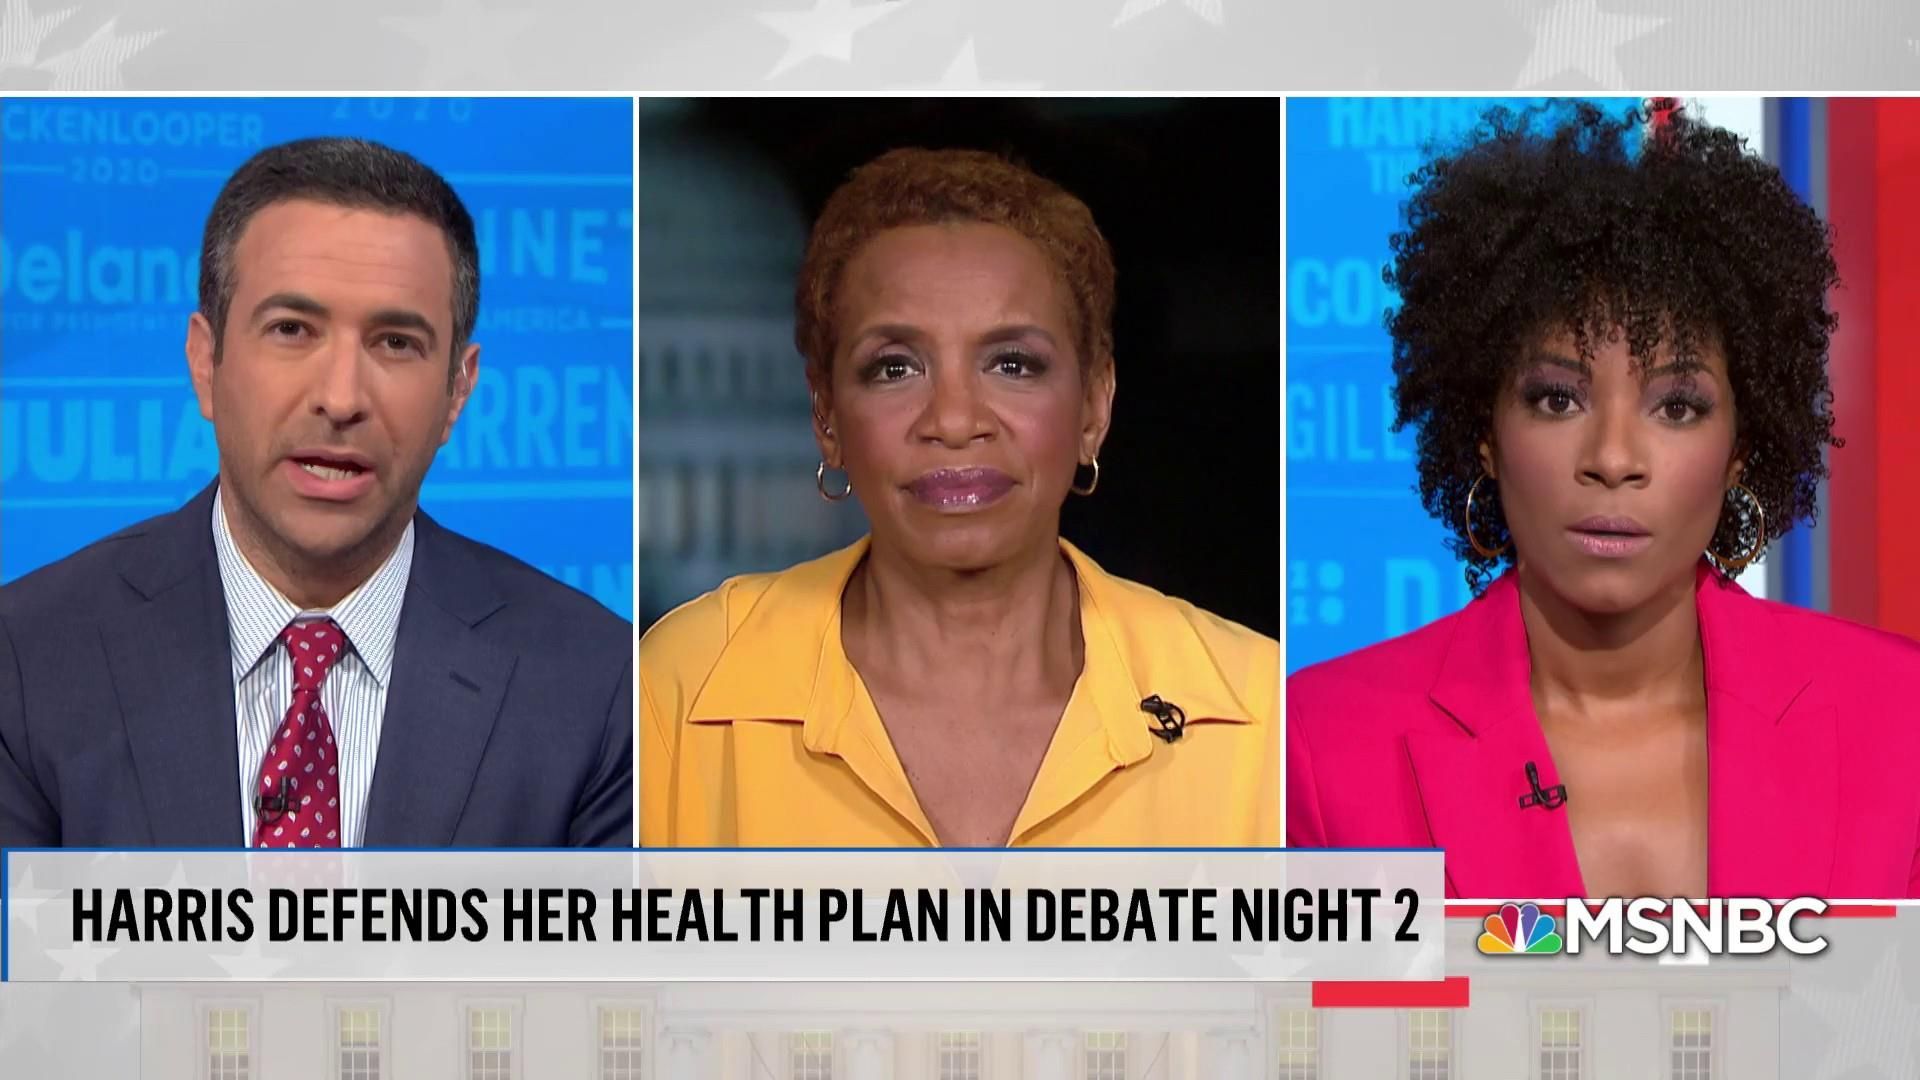 Democrats air health care plan details in second debate